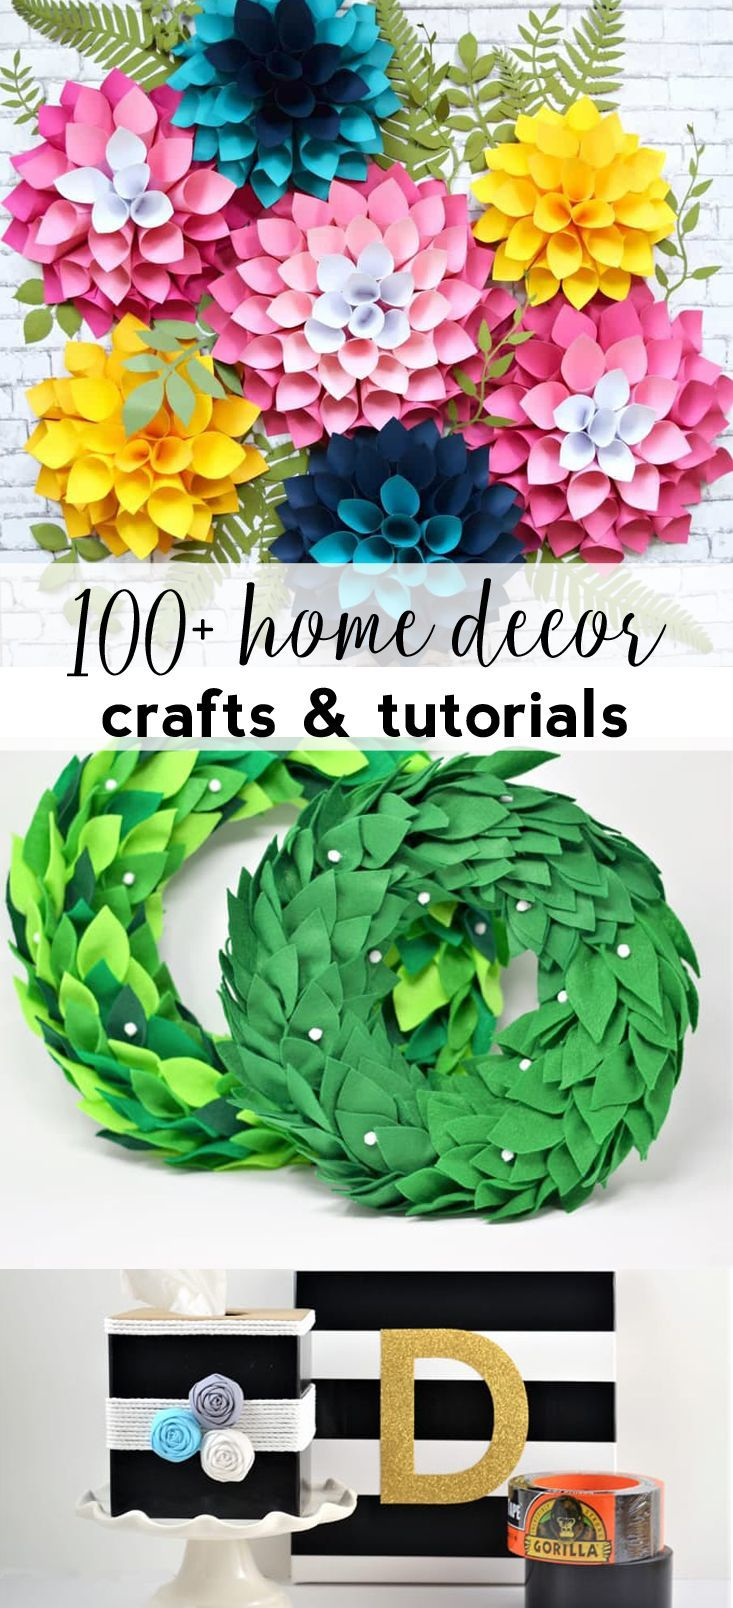 Home decor ideas wall art crafts crafts ideas diy